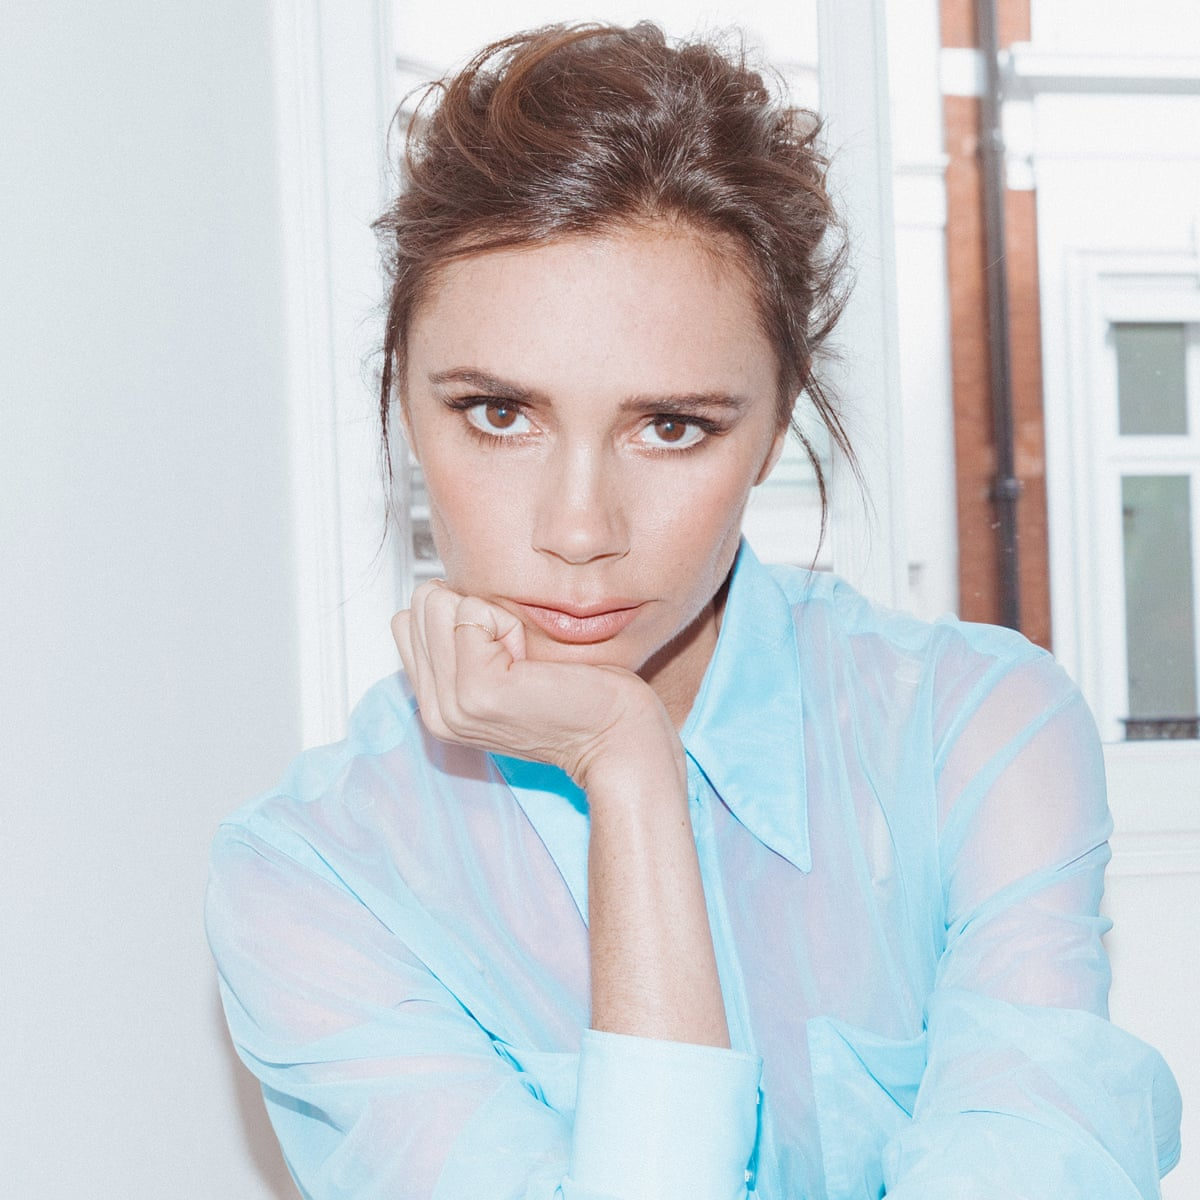 Victoria Beckham I Guess It Was A Sign Of Insecurity Wearing Very Tight Clothes Victoria Beckham The Guardian